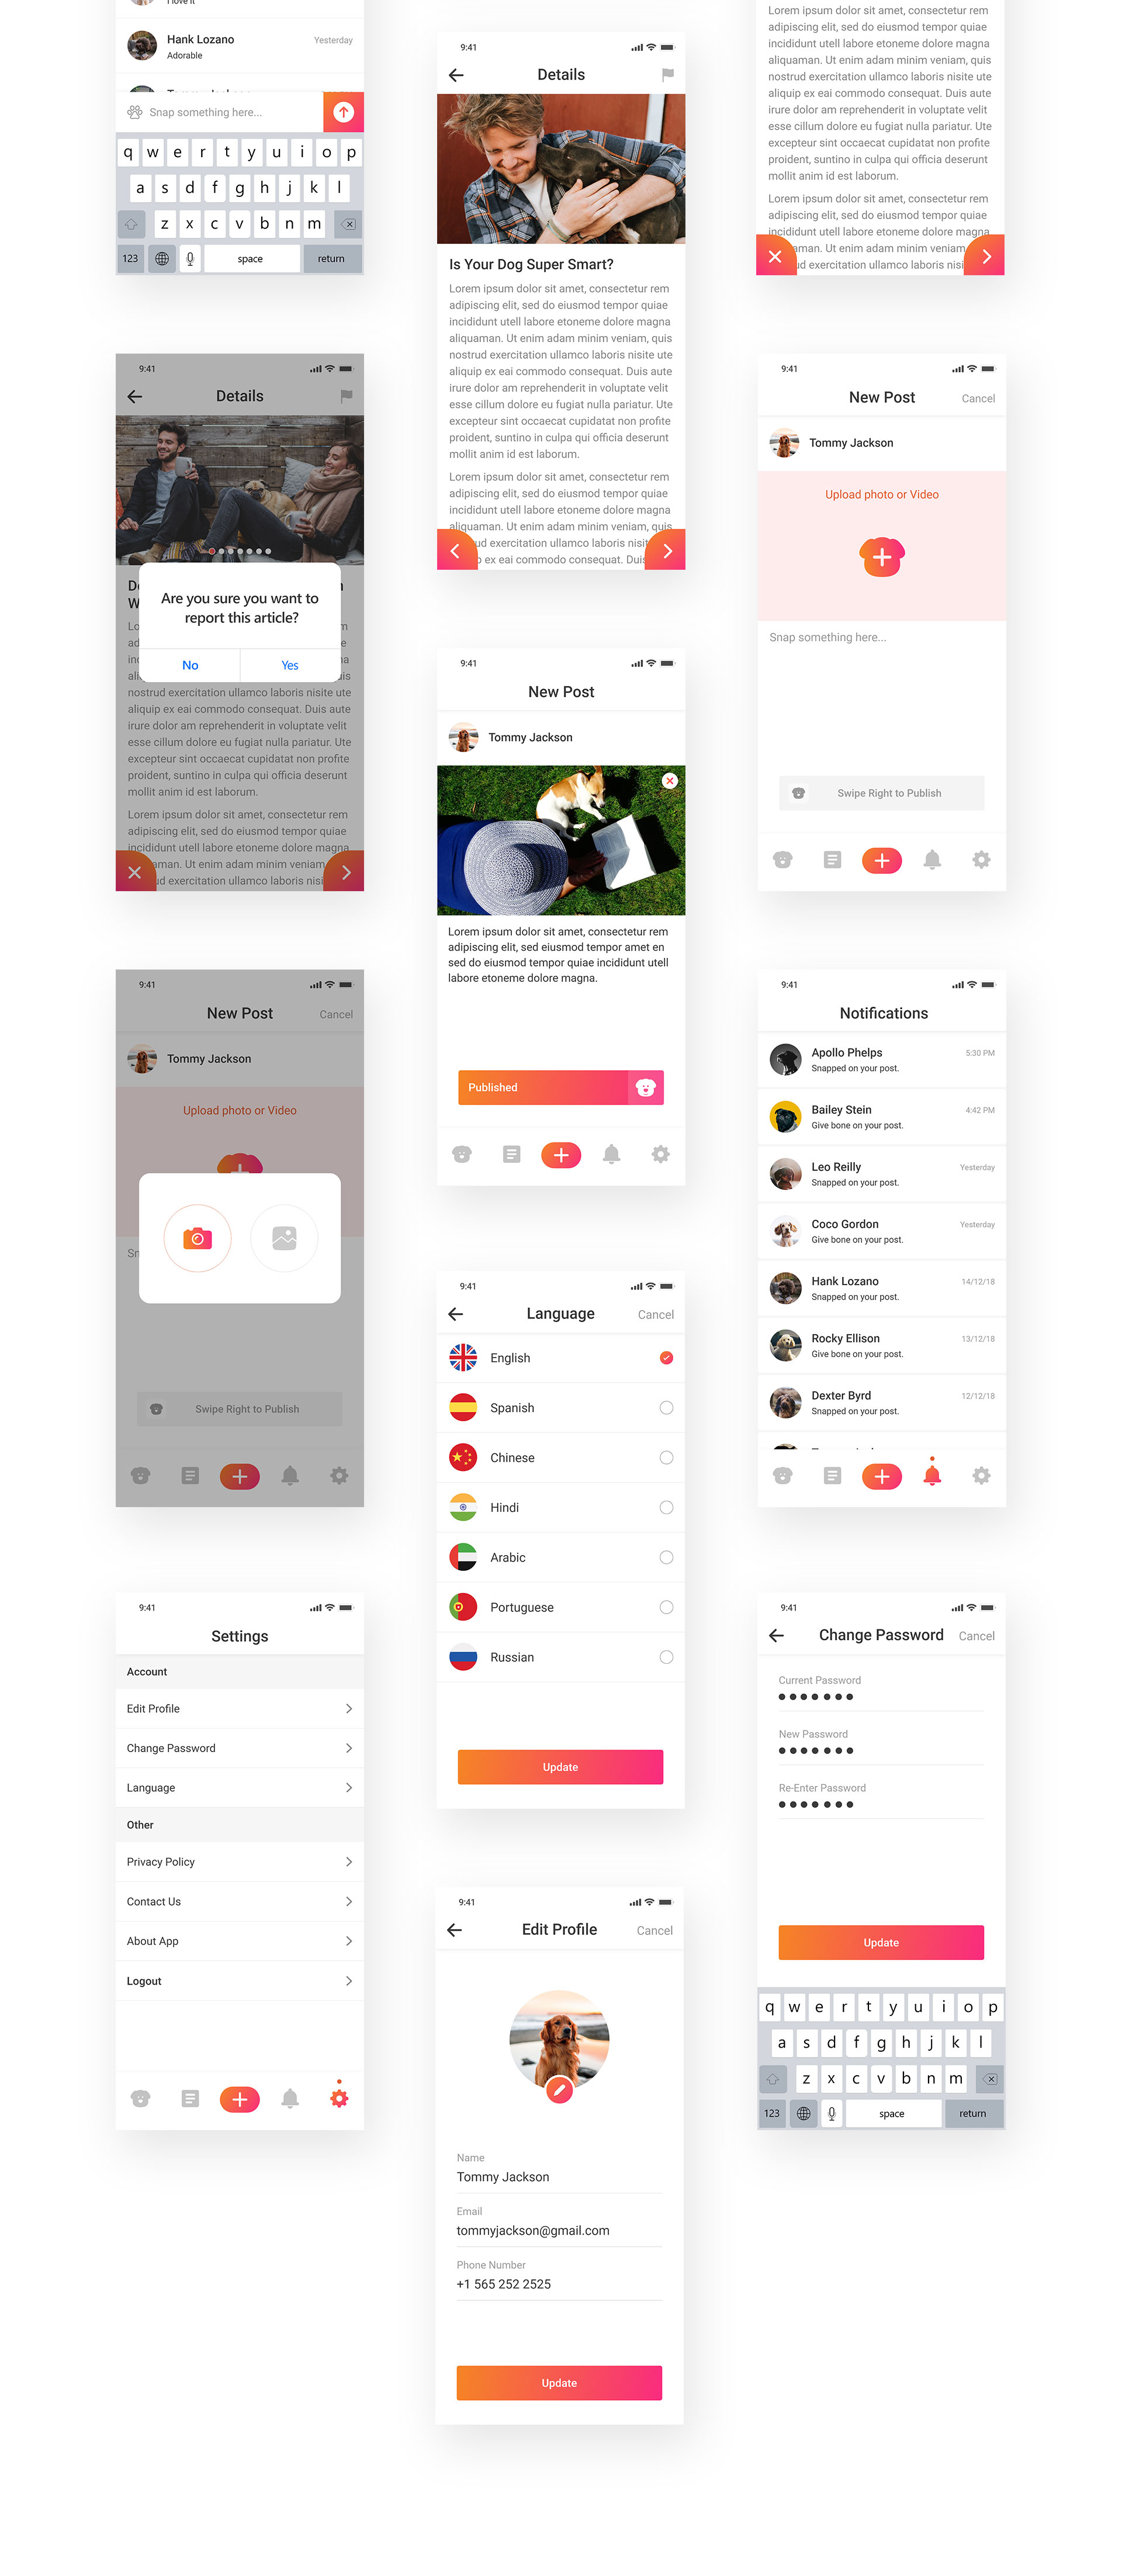 Doglife UI Kit Free for Adobe XD - Doglife is an app for dogs and dogs lovers, who loves to share photos of their dogs and dog's lifestyle. Minimal and clean app design, ready for you to get started.